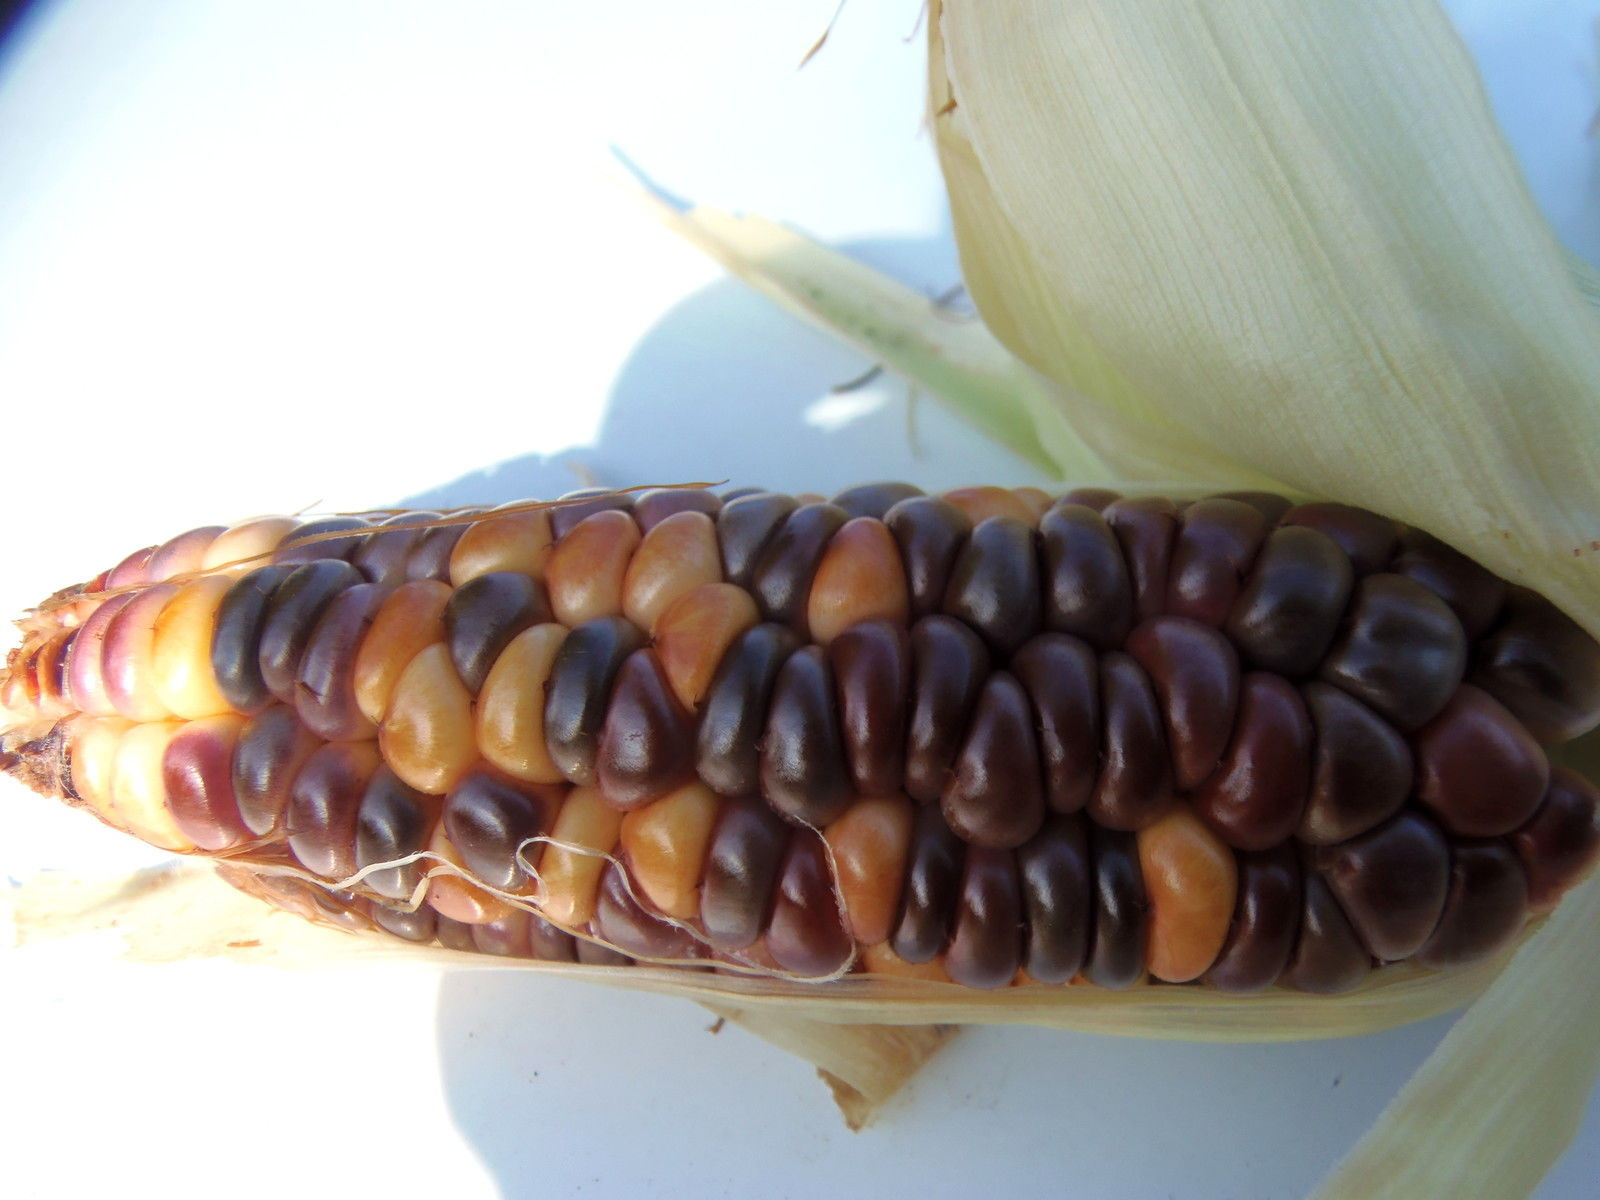 Rainbow Sweet Corn  - multicolored kernels with sweet, old-fashioned flavor